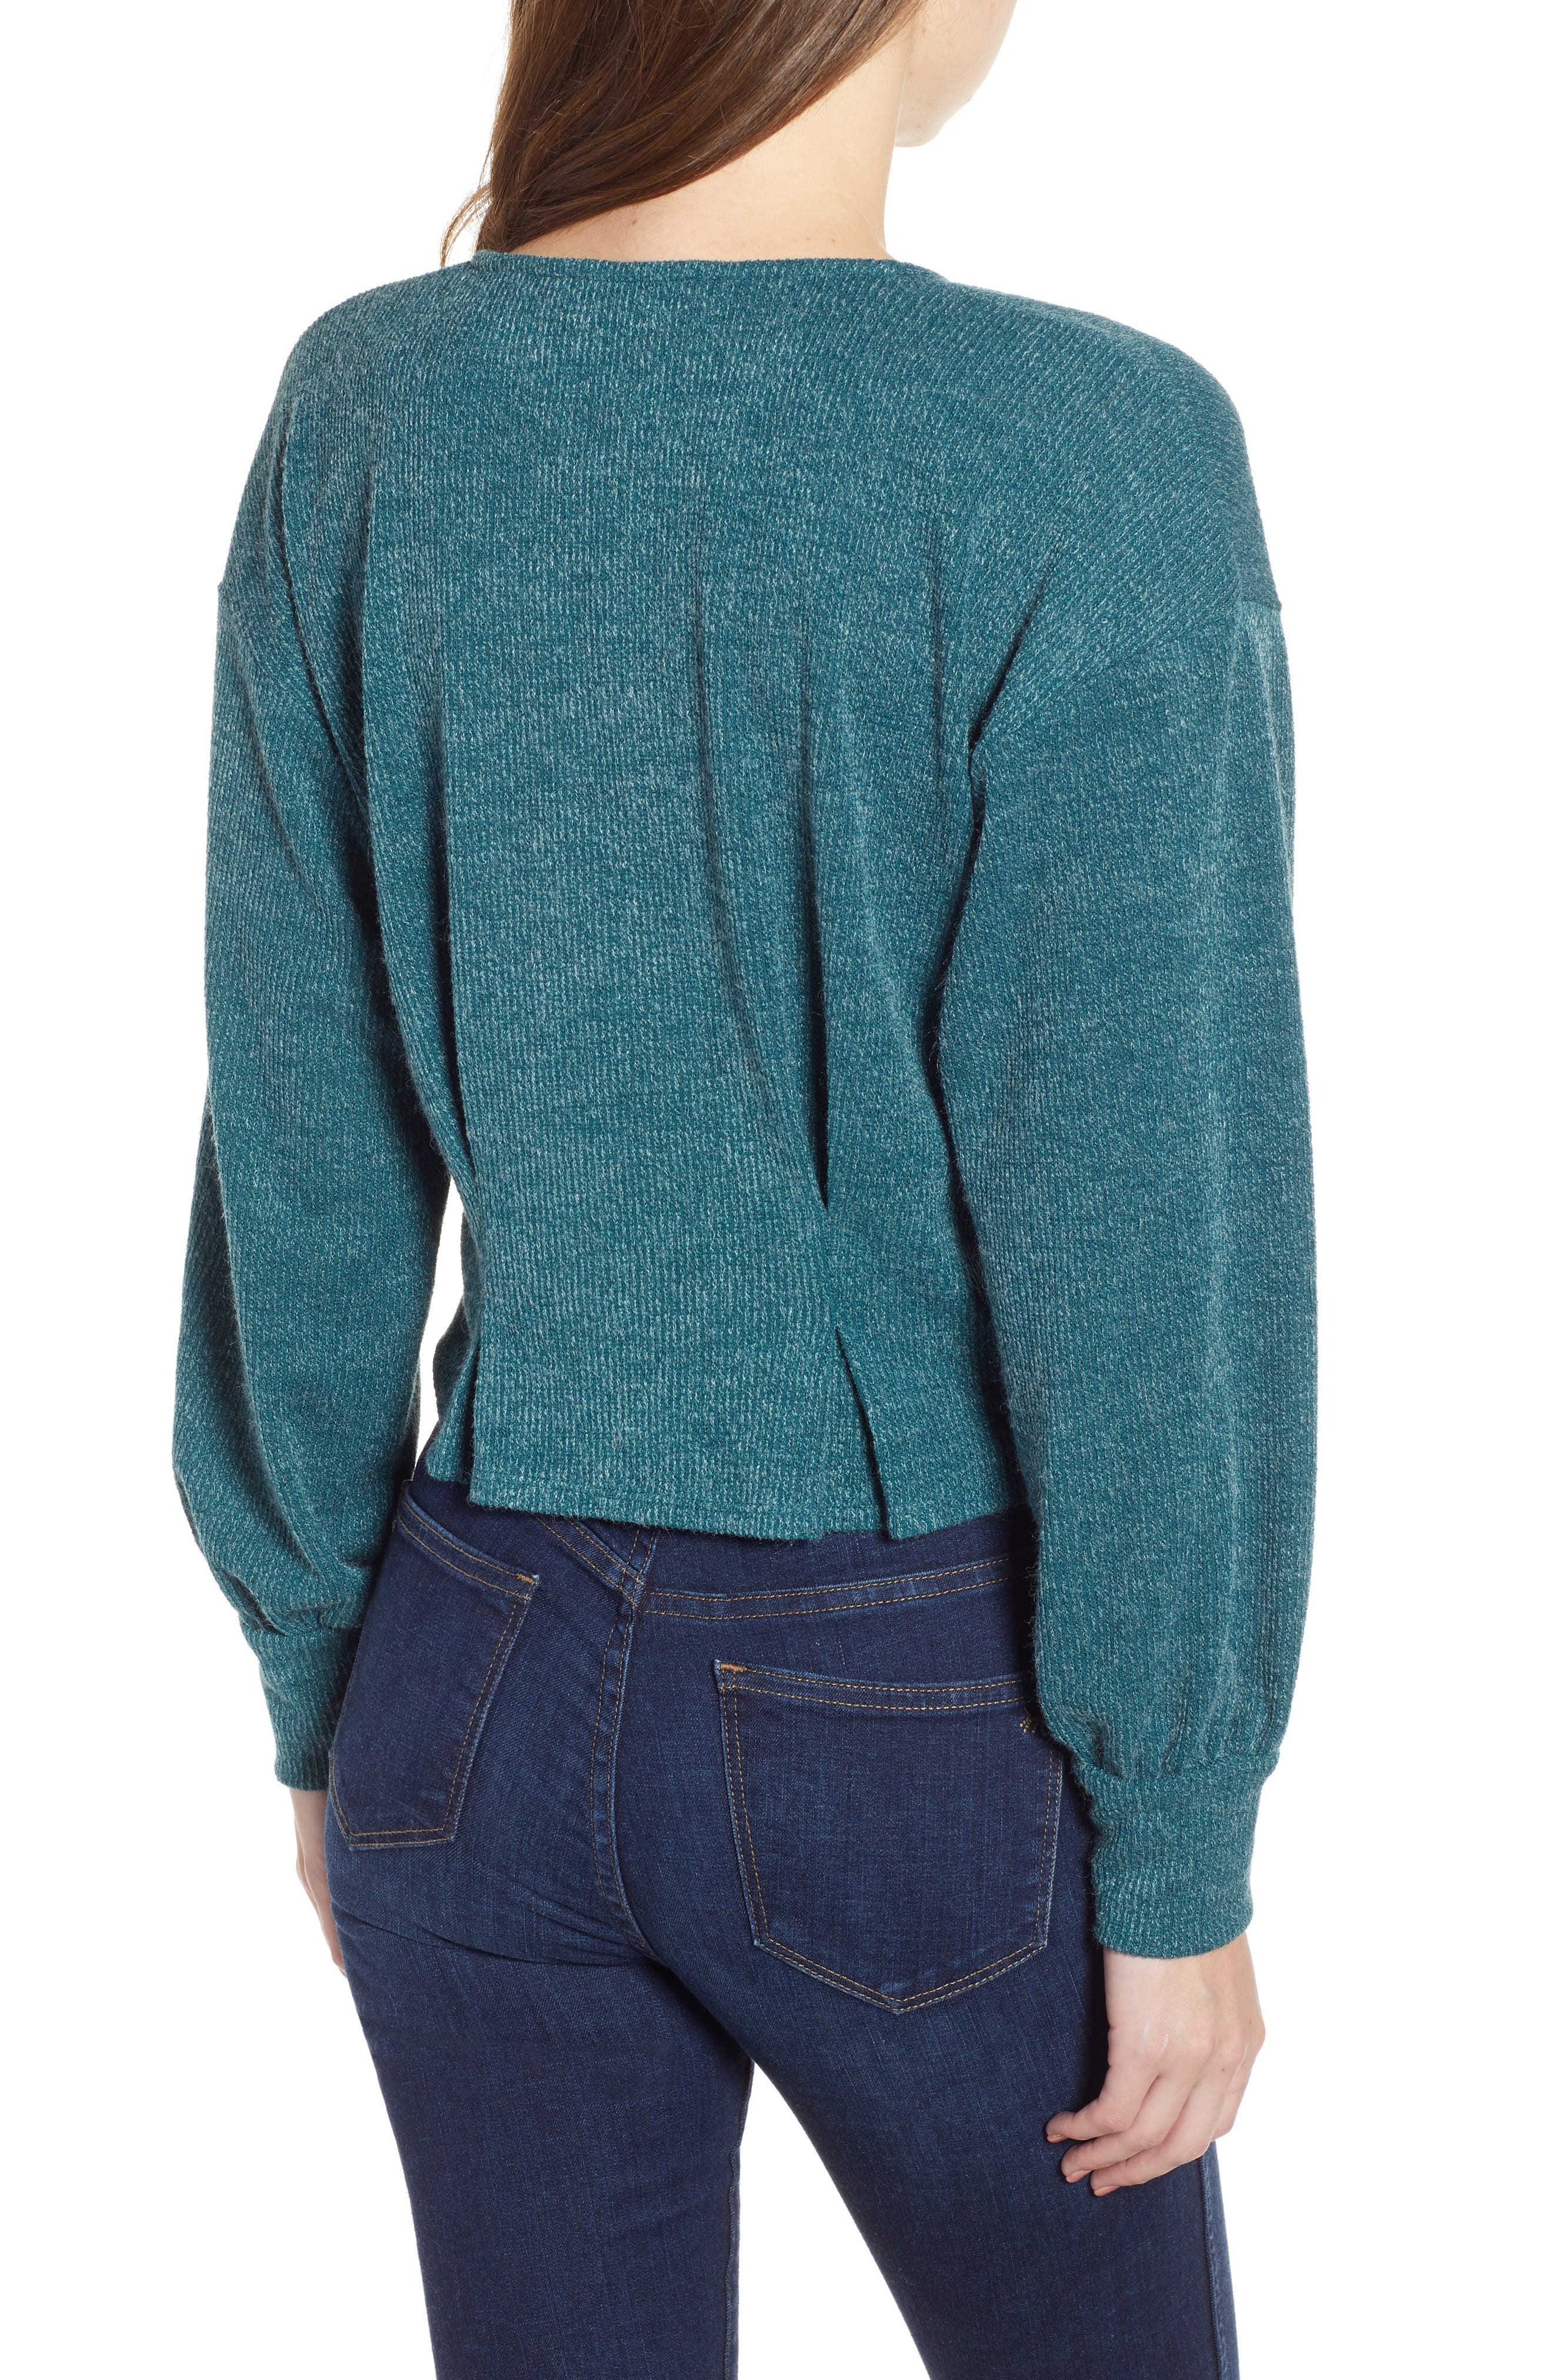 Wrap Sweater,                             Alternate thumbnail 2, color,                             TEAL